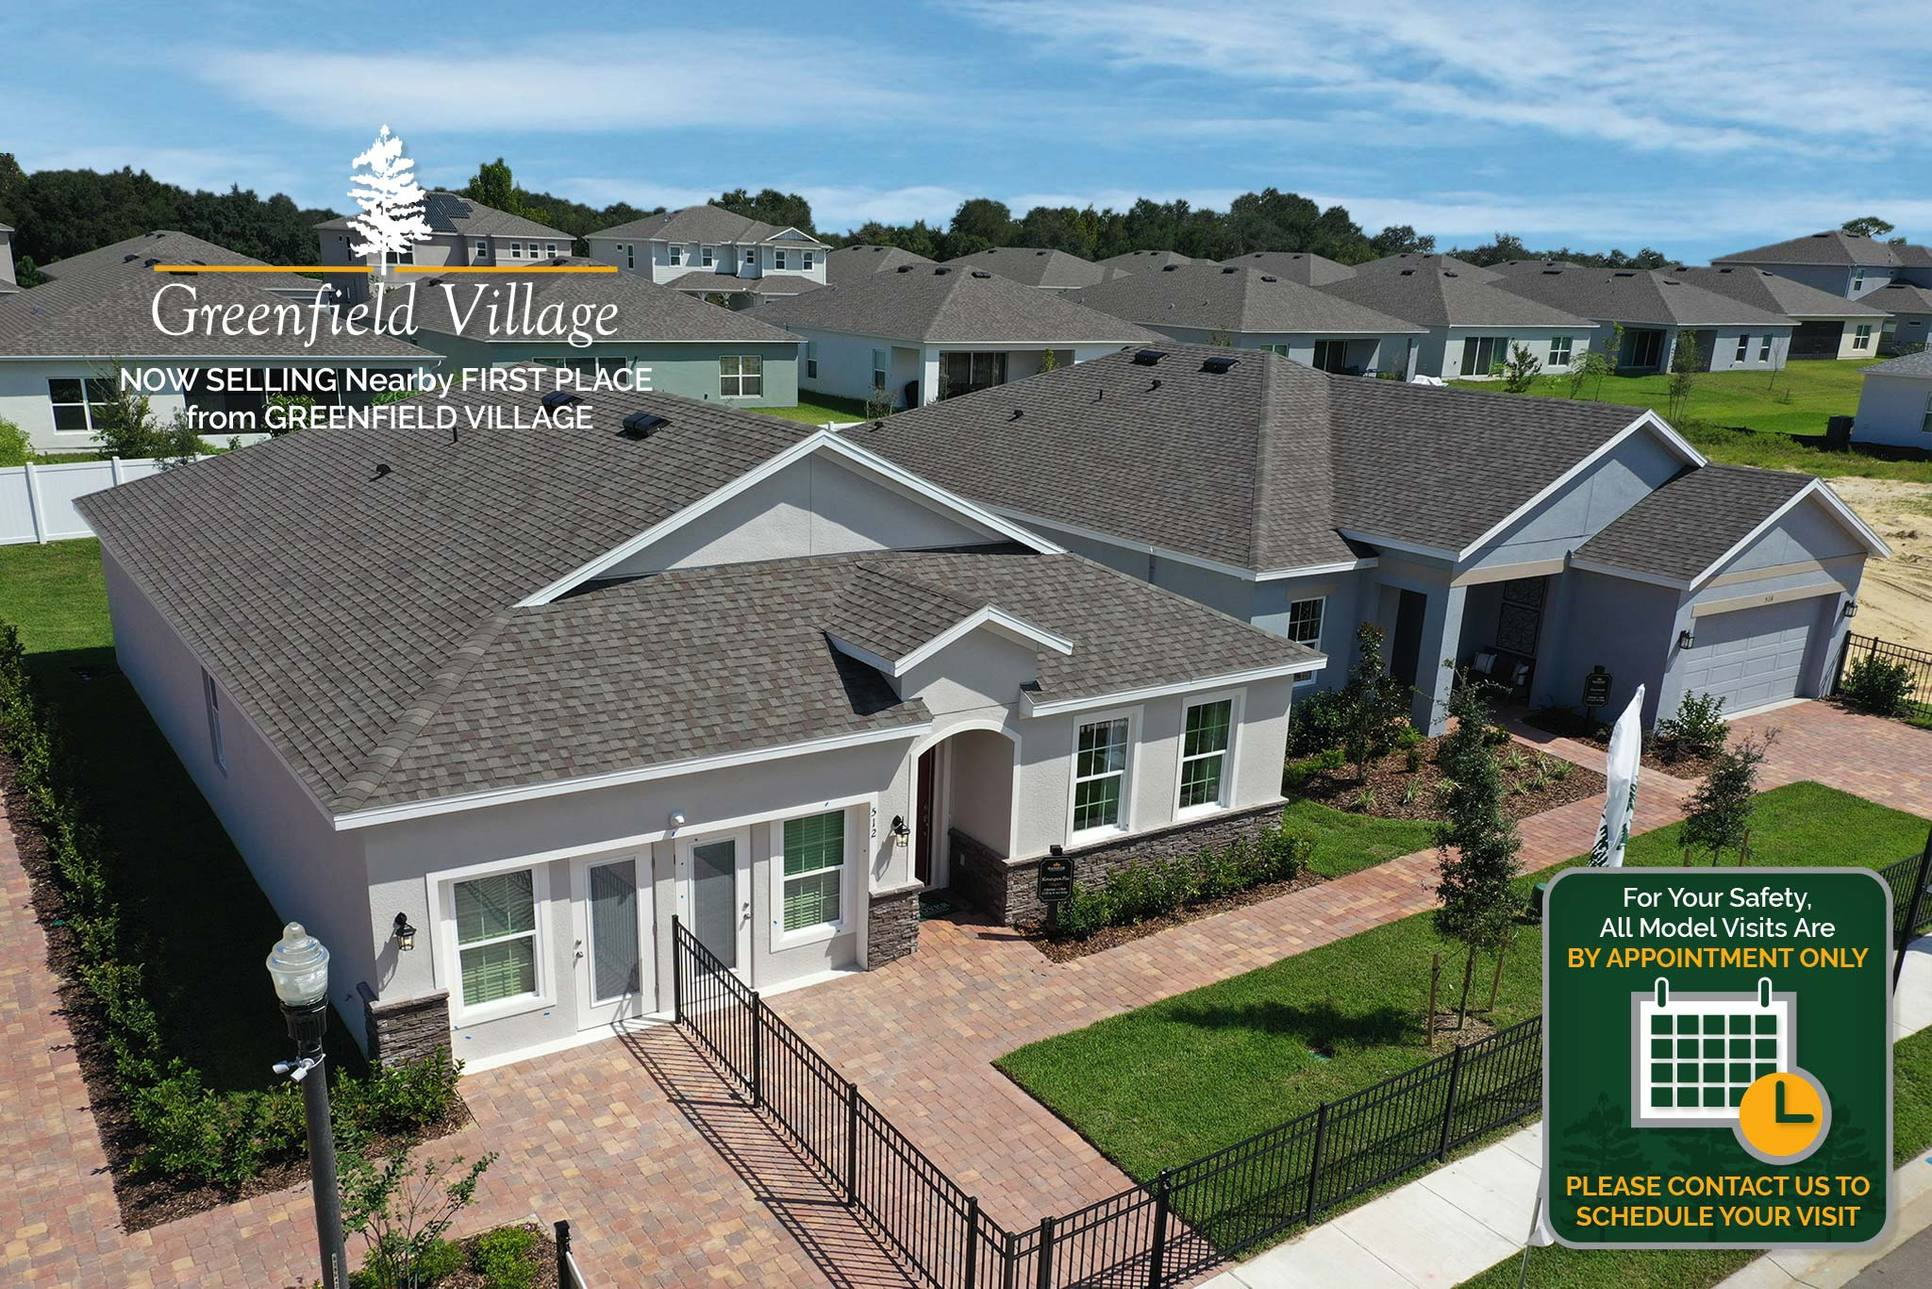 Stunning Model Homes at Greenfield Village:Available to Tour, By Appointment Only!